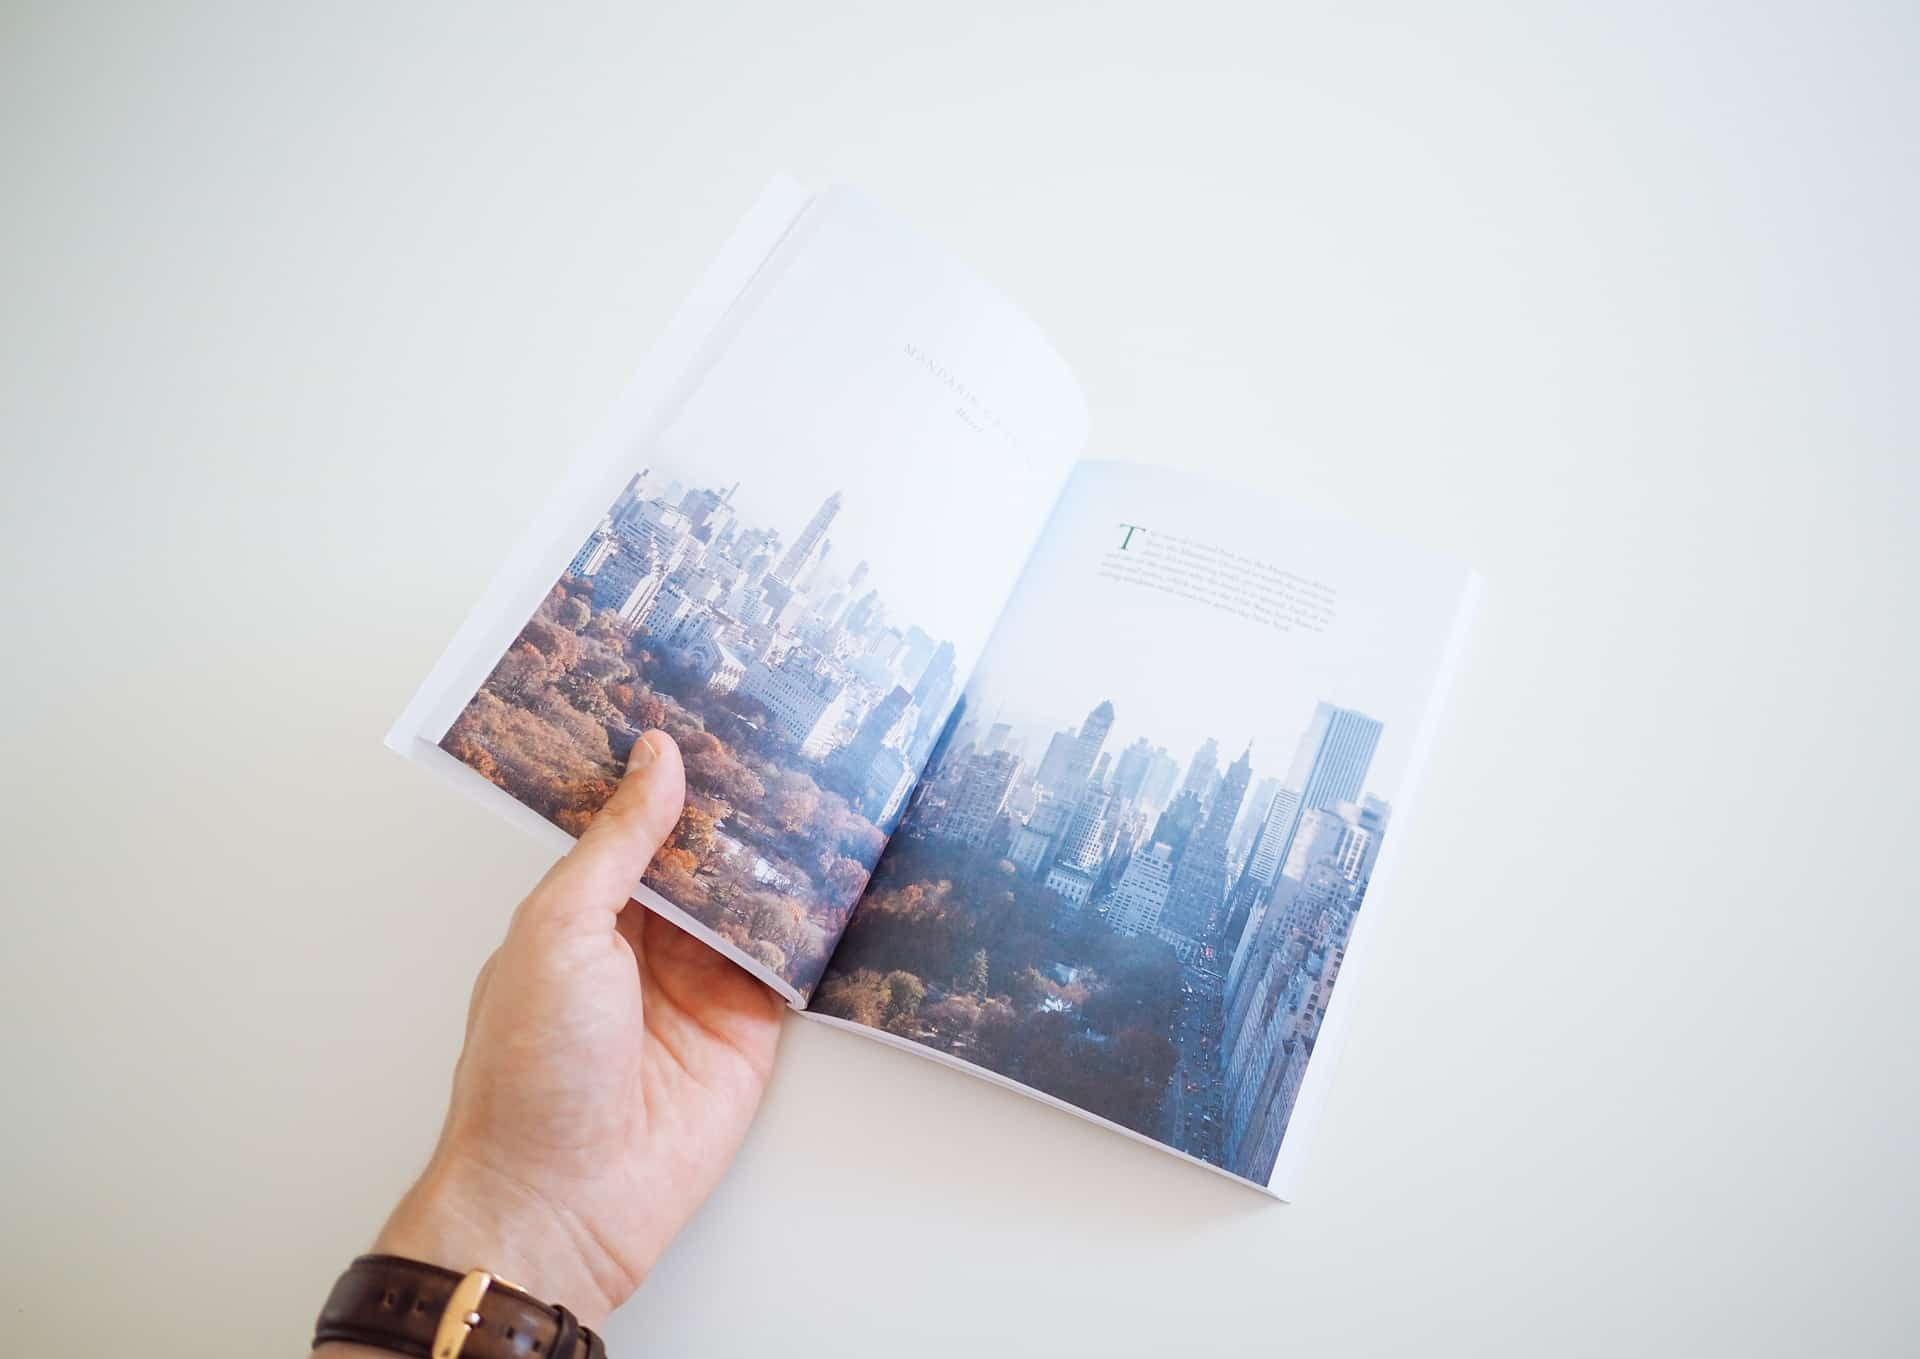 The Guided series by Cereal Magazine is a visually stunning way to capture modern travel.